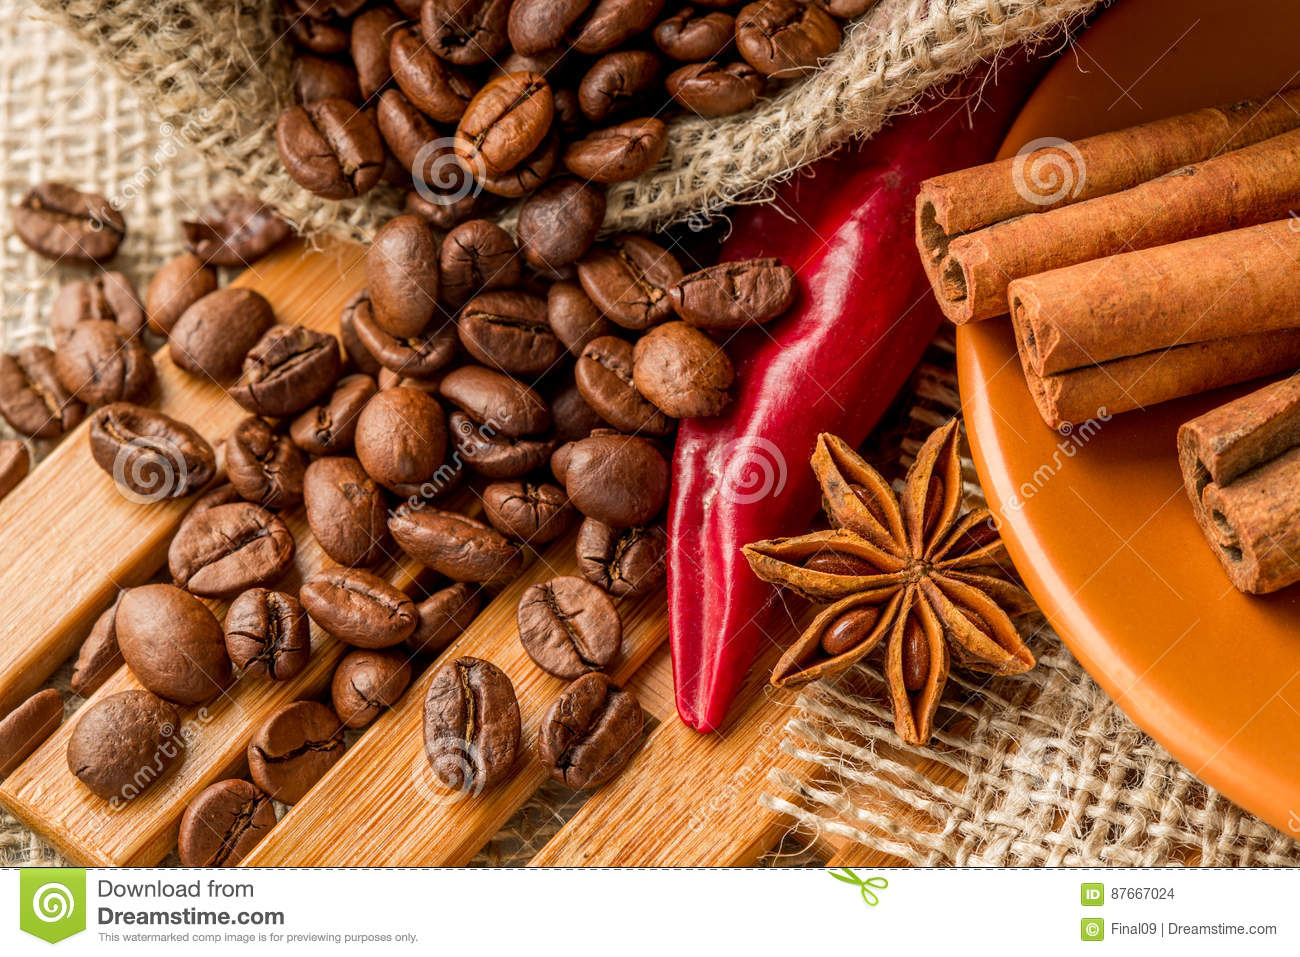 Red pepper, coffee beans, and star anise